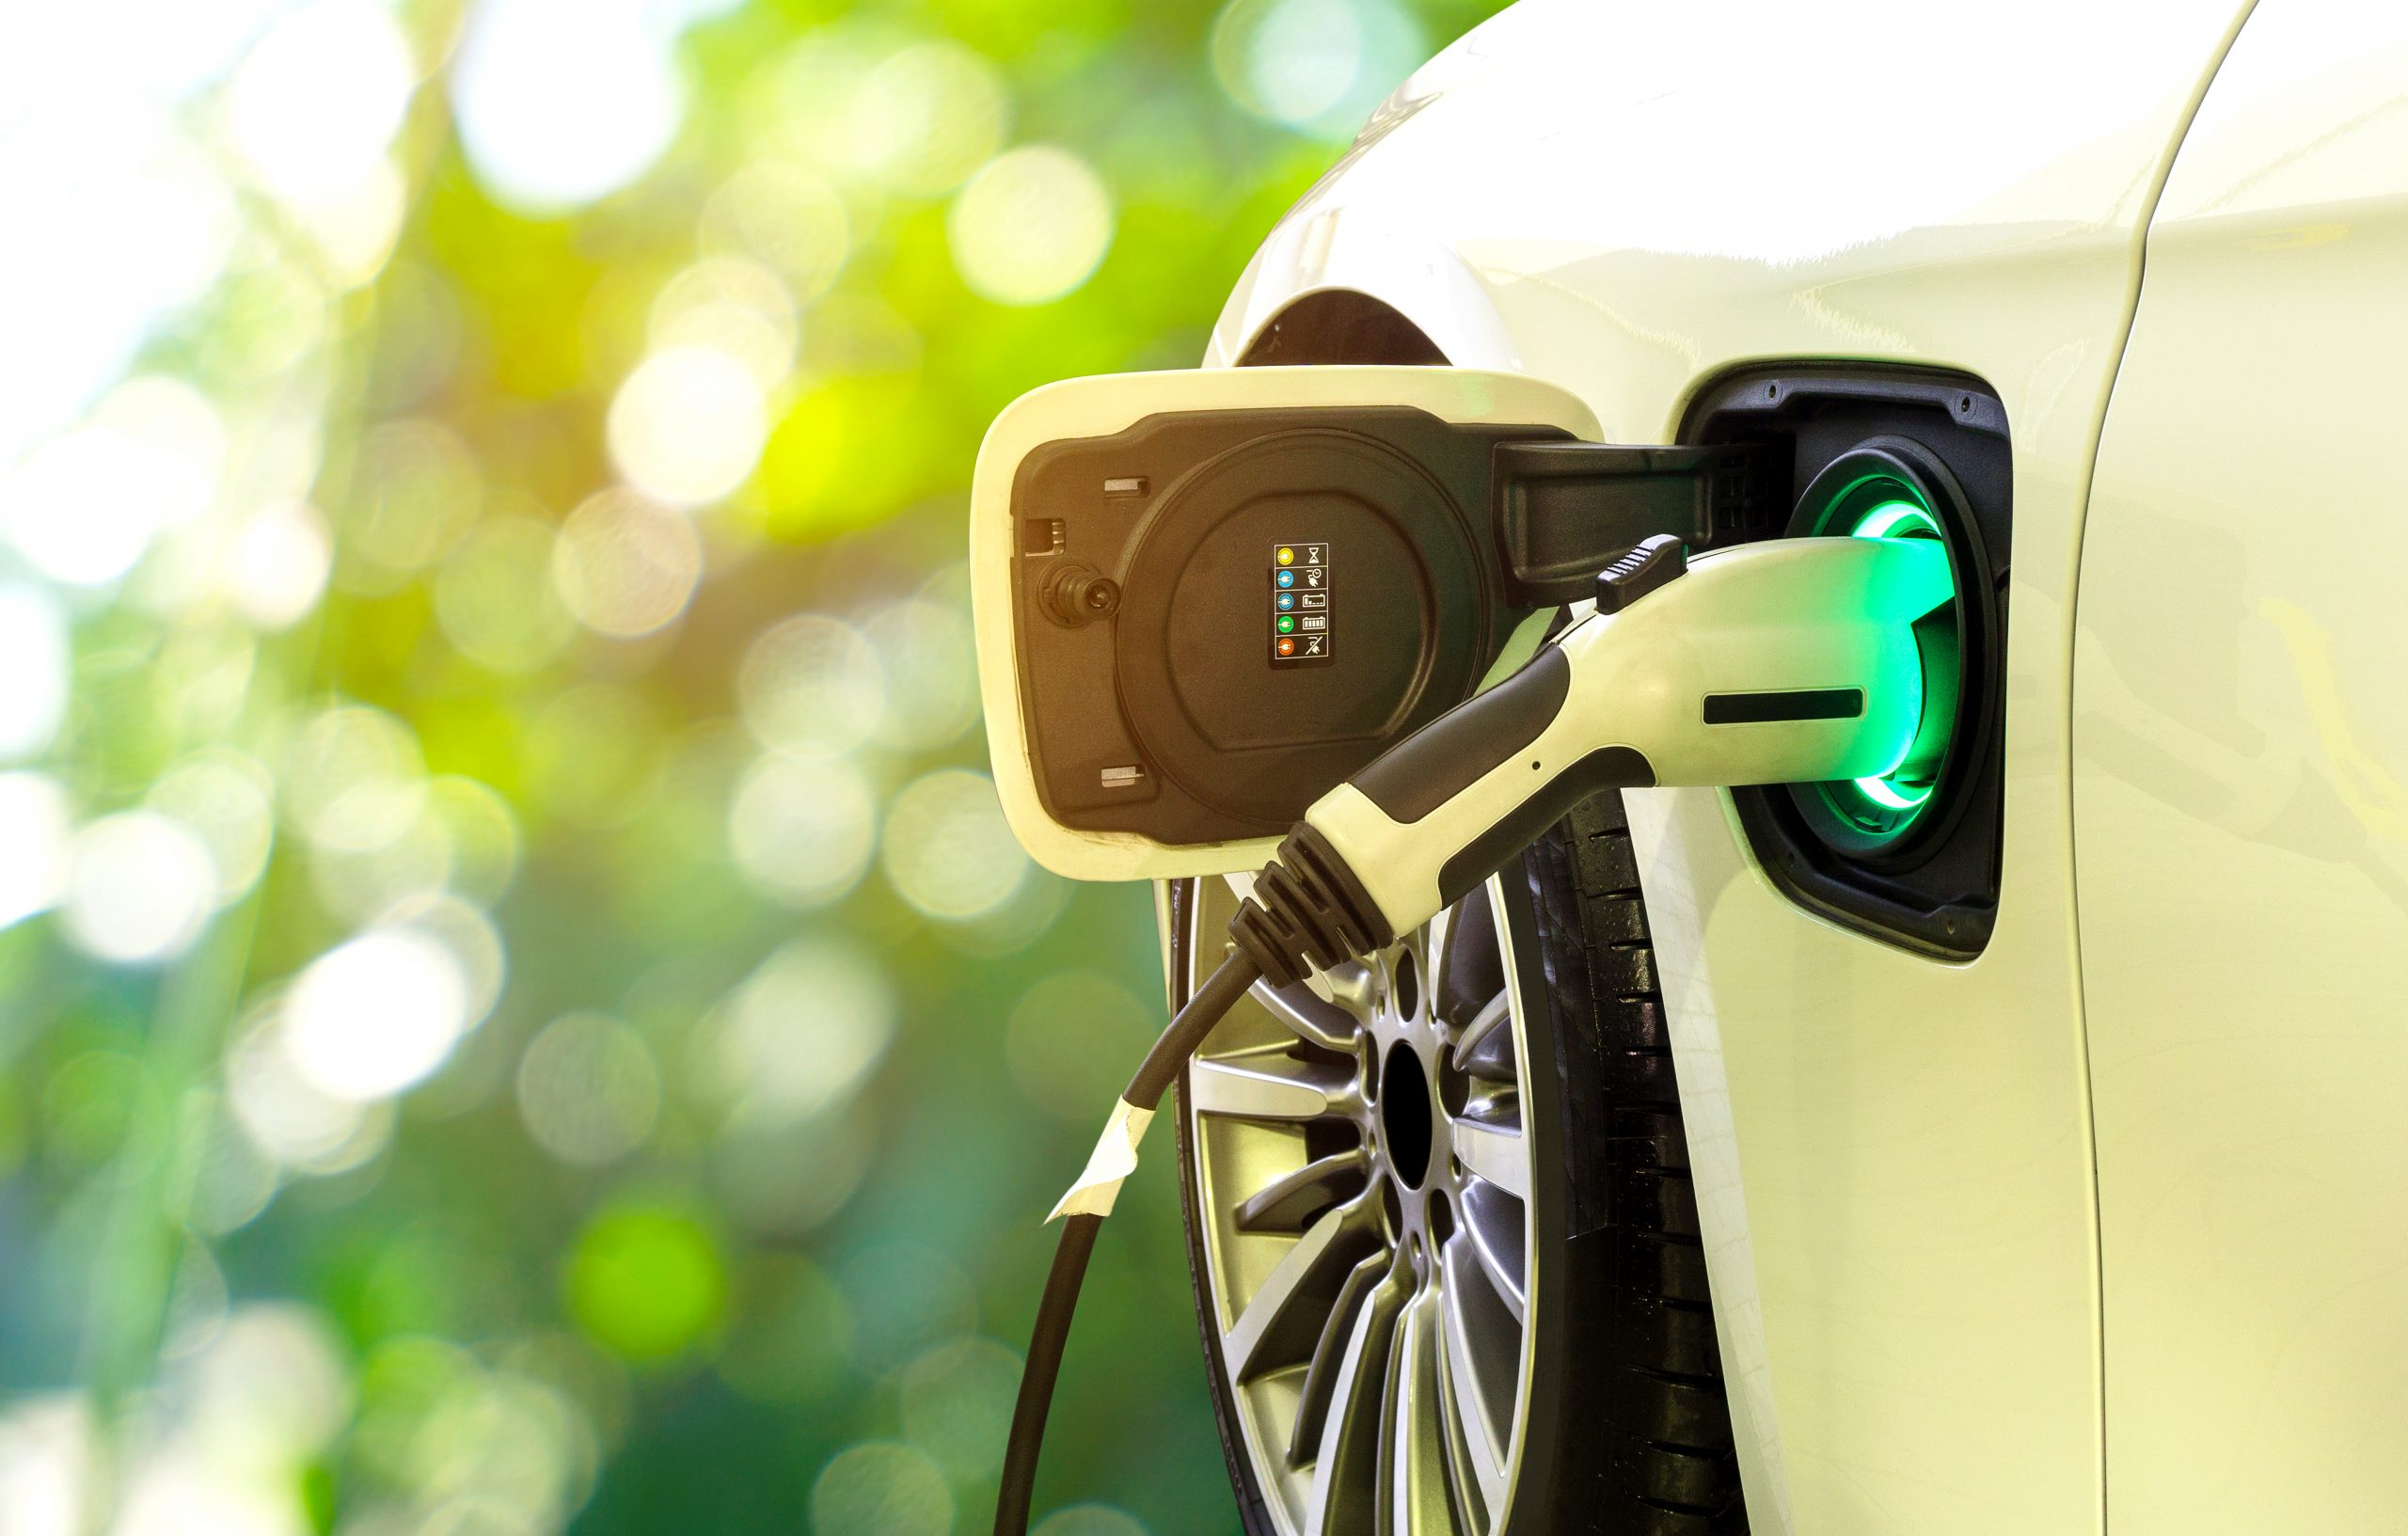 EV Car or Electric car at charging station with the power cable supply plugged in on blurred nature with soft light background.